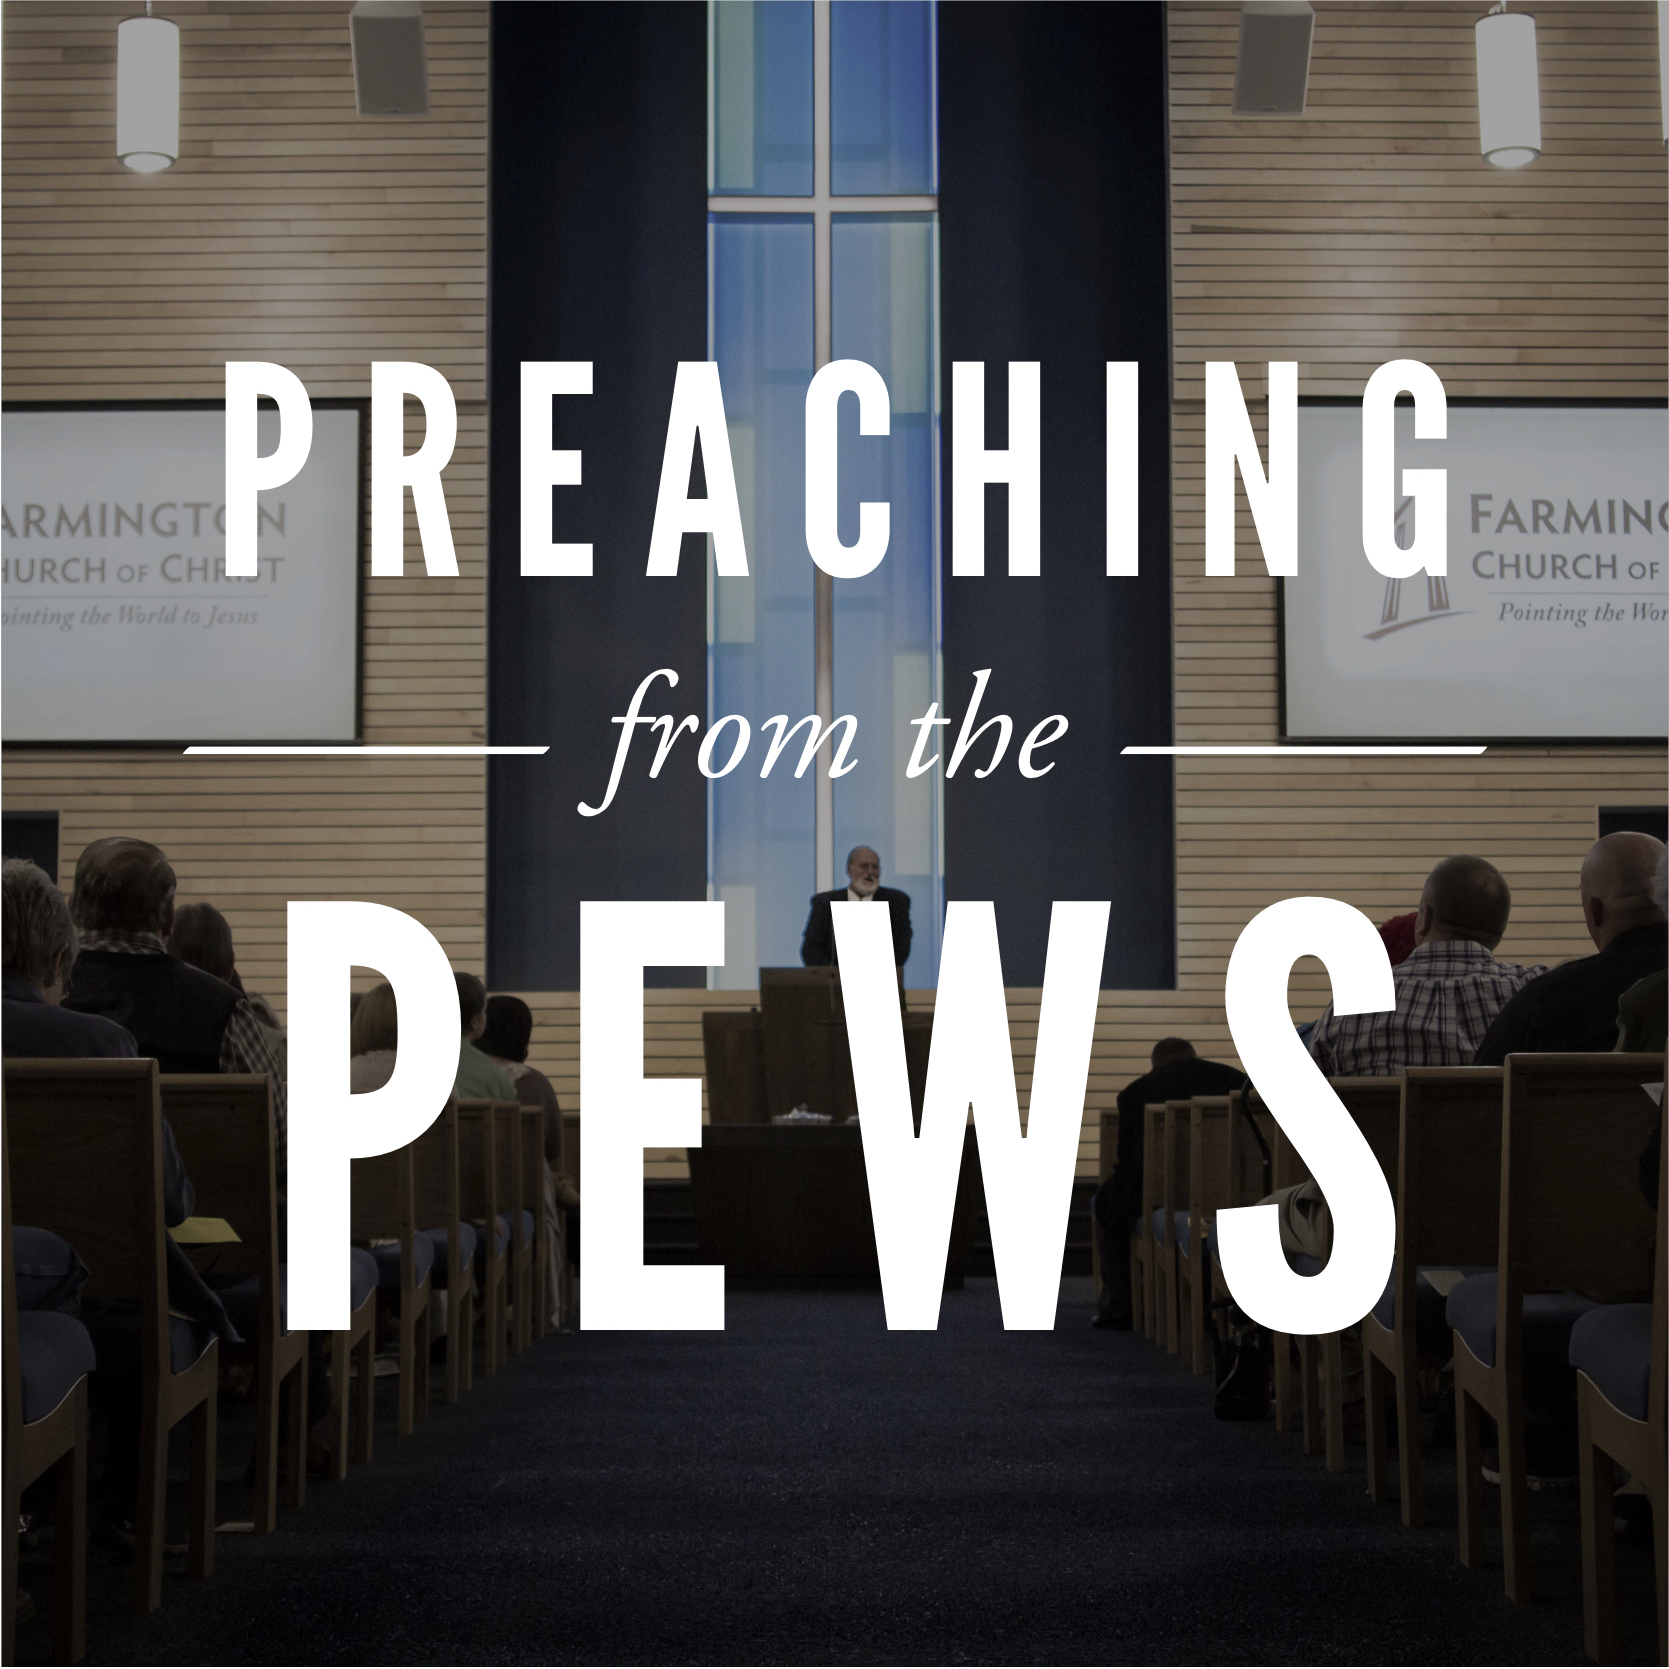 Preaching from the Pews.jpg